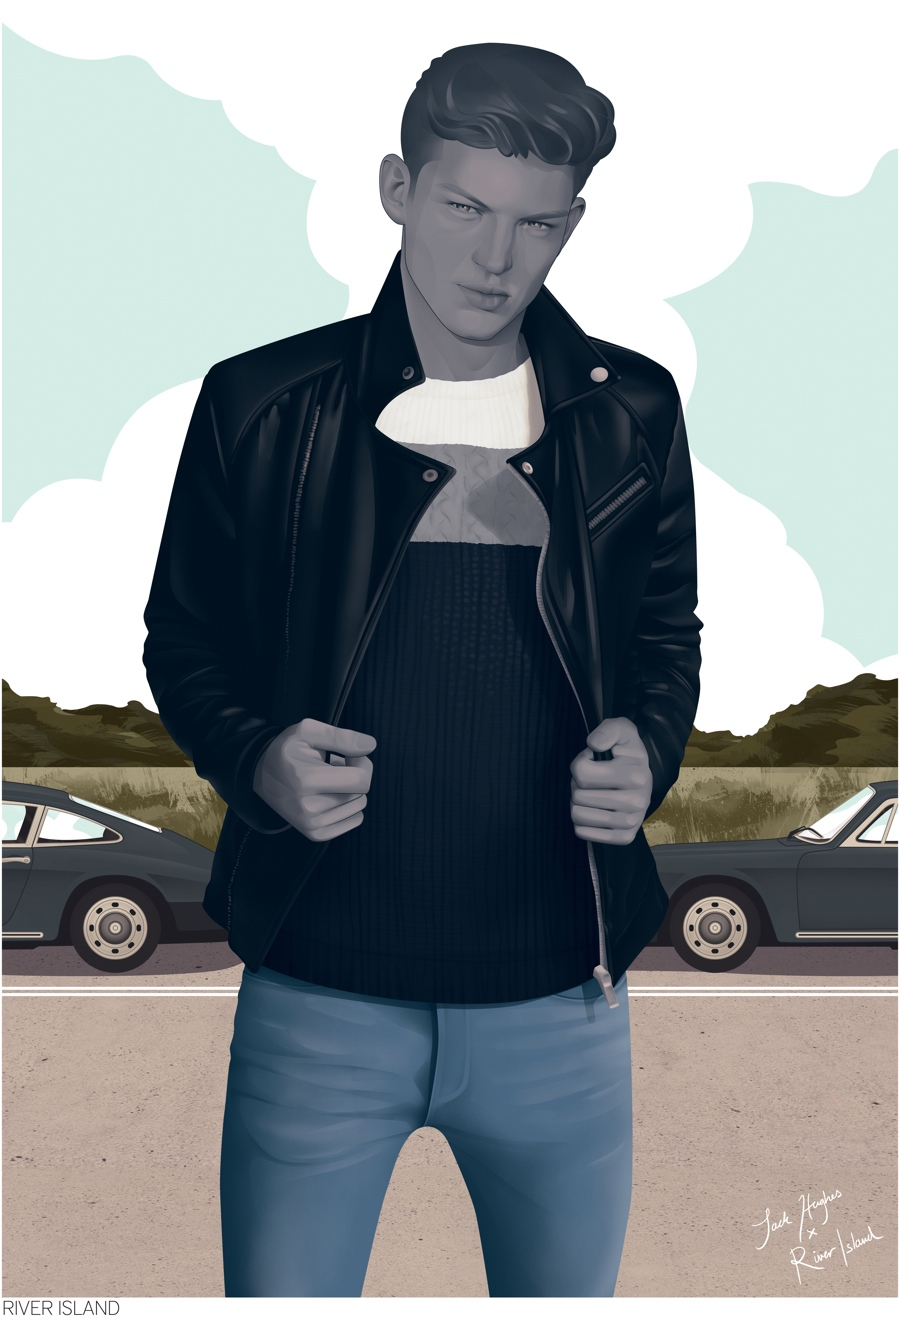 River Island Collaborates with Jack Hughes for Illustrated Look at Fall 2014 Collection